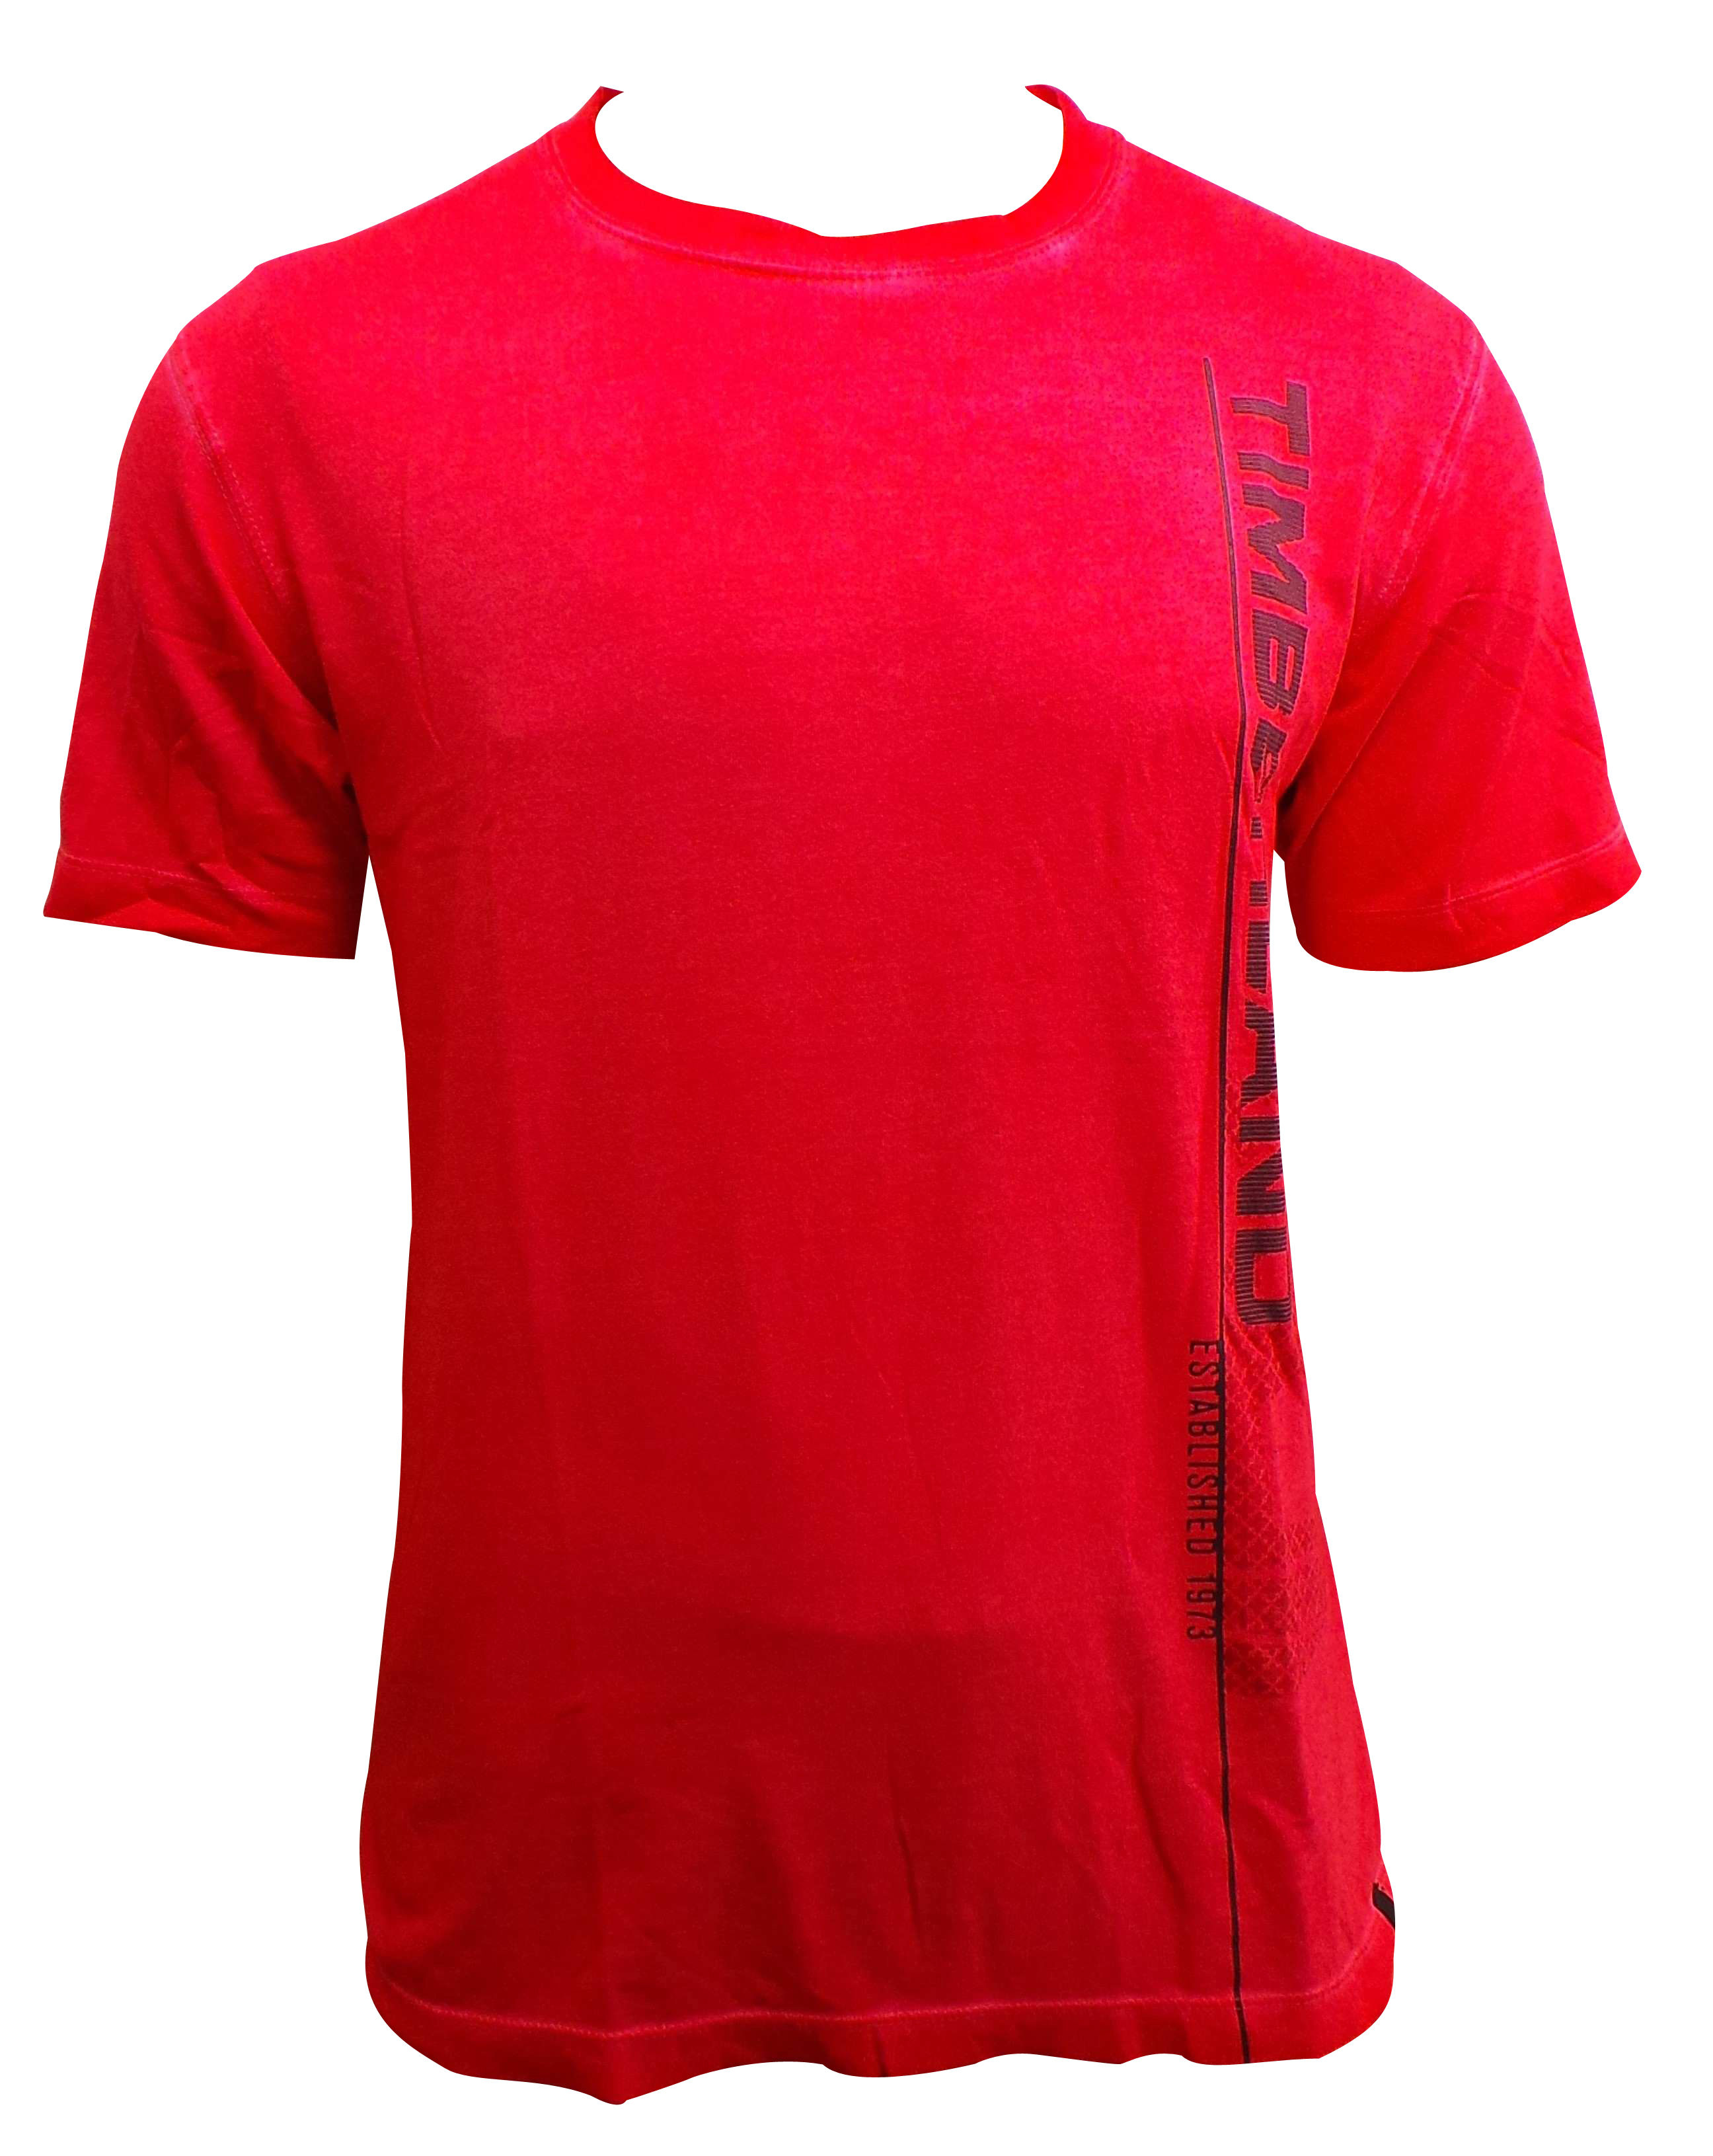 Pro 5 T shirts are pre-shrunk and made of % cotton. Our Super Heavy Weight Pro 5 T shirts are available in 12 fashionable colors. Choose from black, white, red, navy blue, gray, and much more. Our Pro 5 T shirts come in many sizes from small up to 7X. Pro 5 T shirts are the thickest t-shirts with the tightest necks in urban fashion.